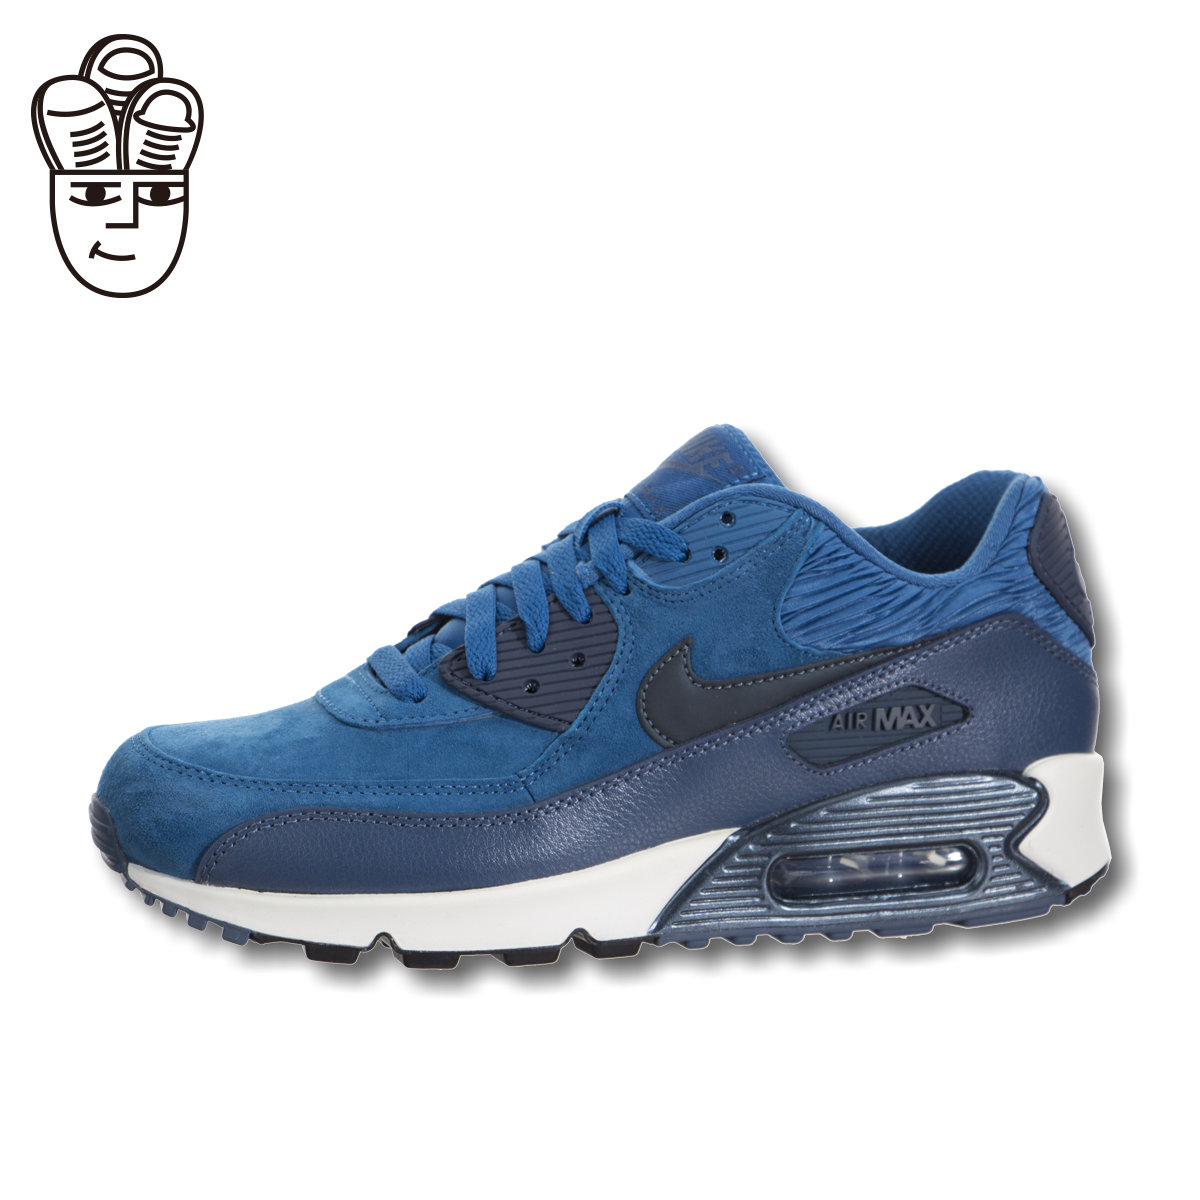 5954e9d72ec Get Quotations · Nike women  s air max 90 nike shoes air cushion running  shoes leather suede